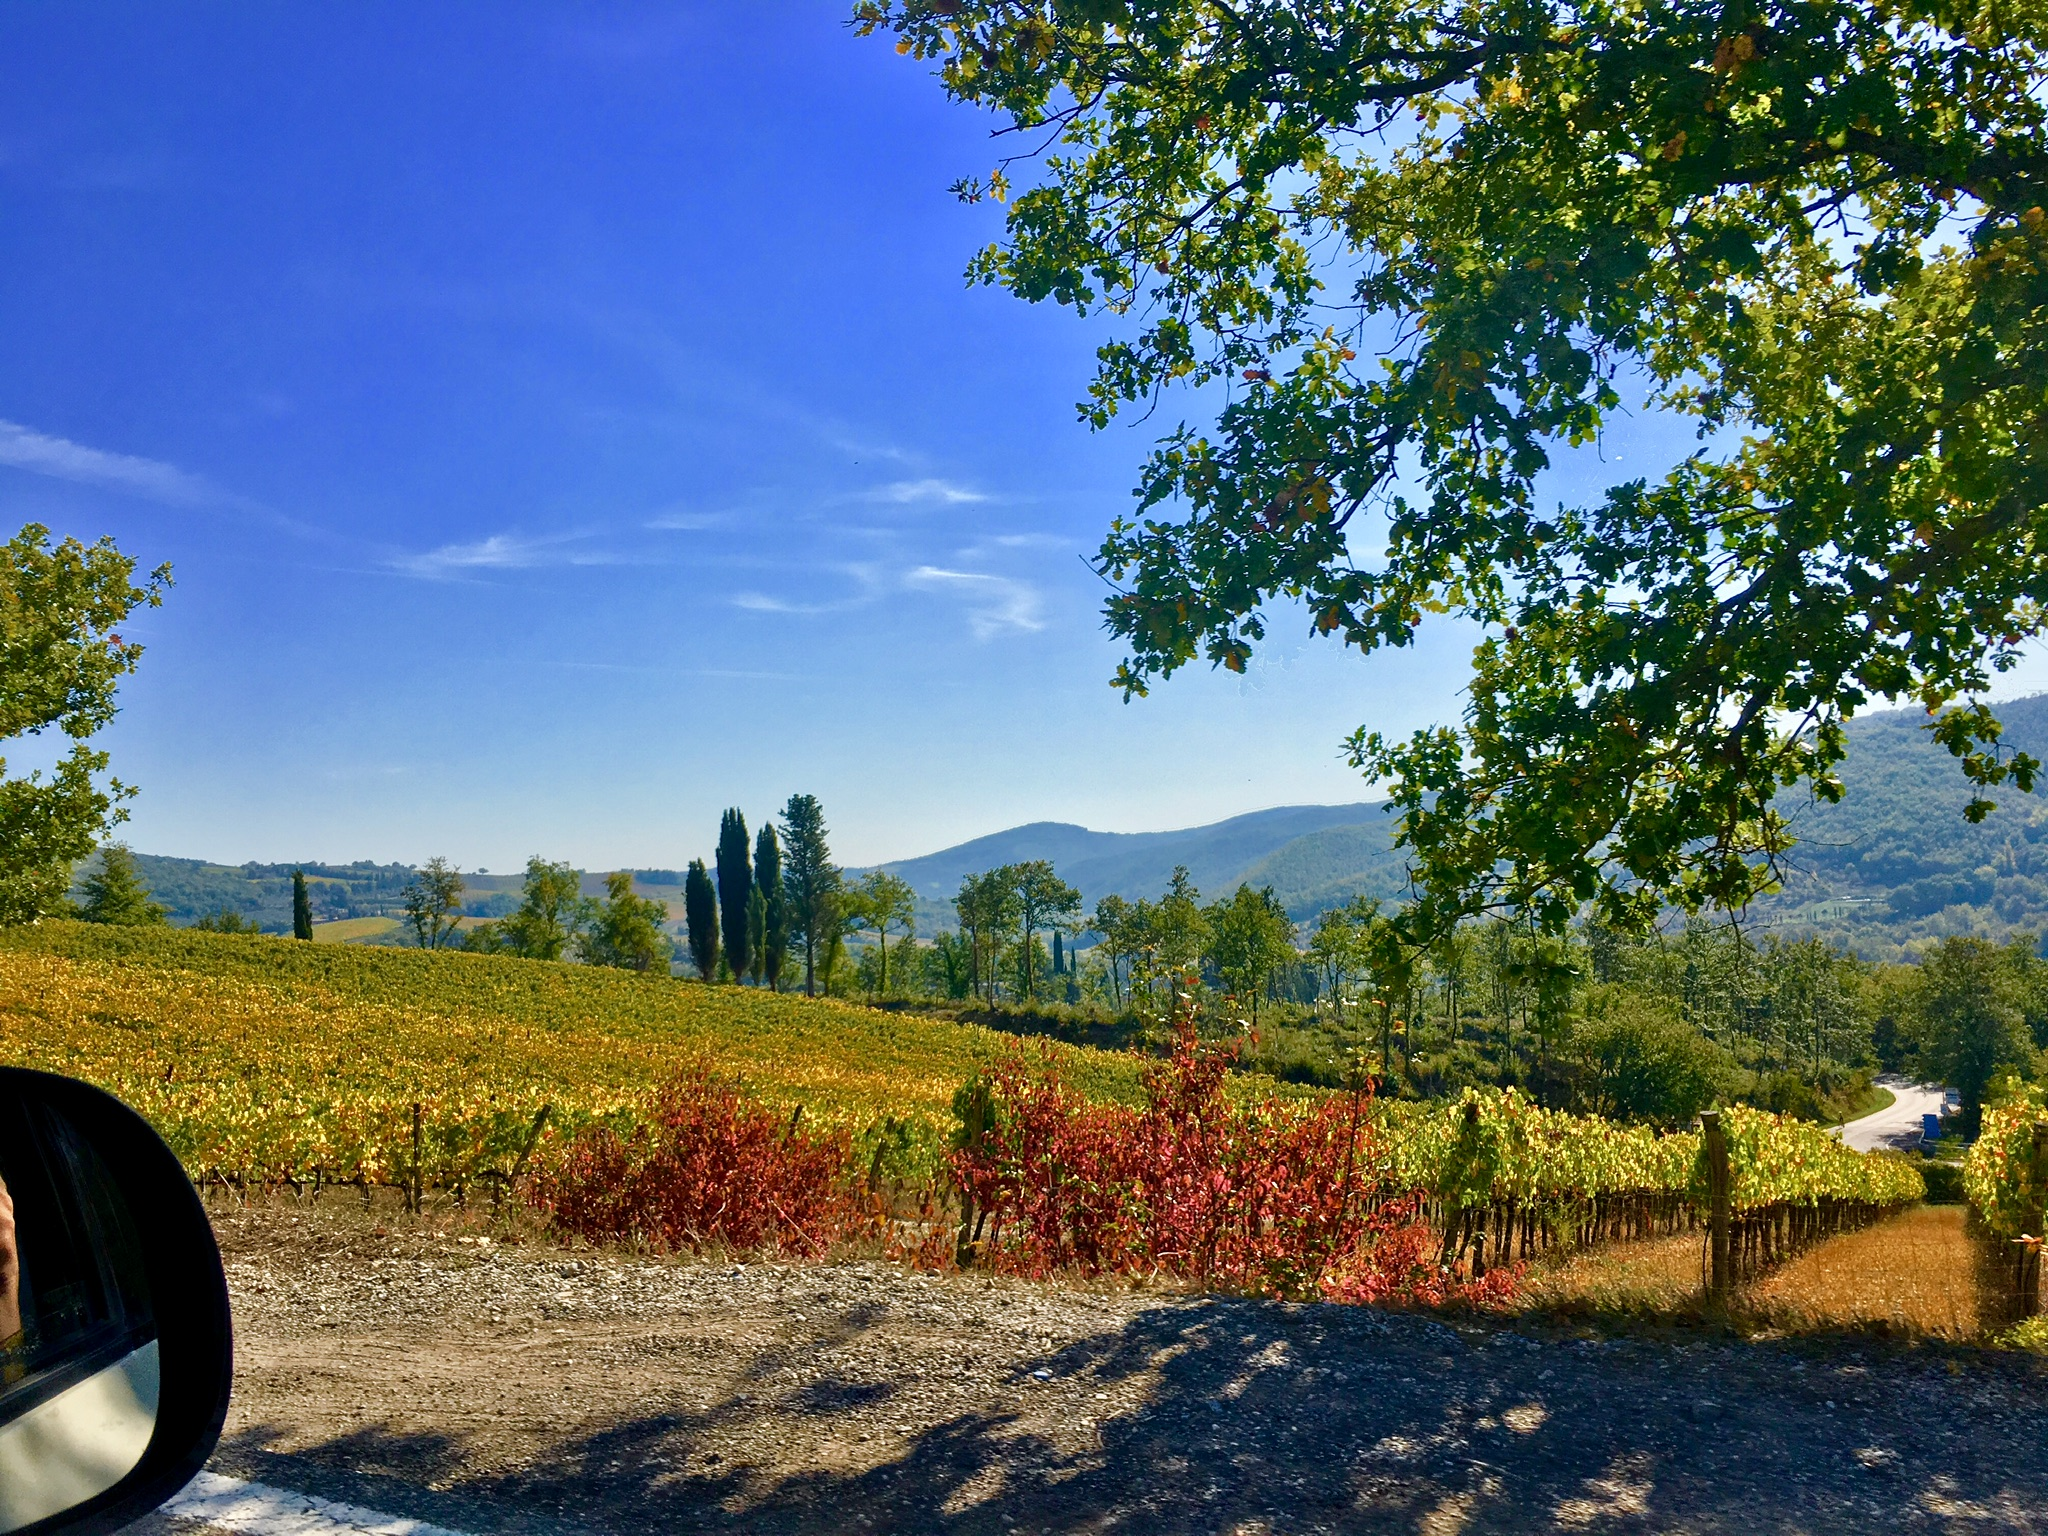 UMBRIA AND TUSCANY - ITALY TRAVEL INSPIRATION